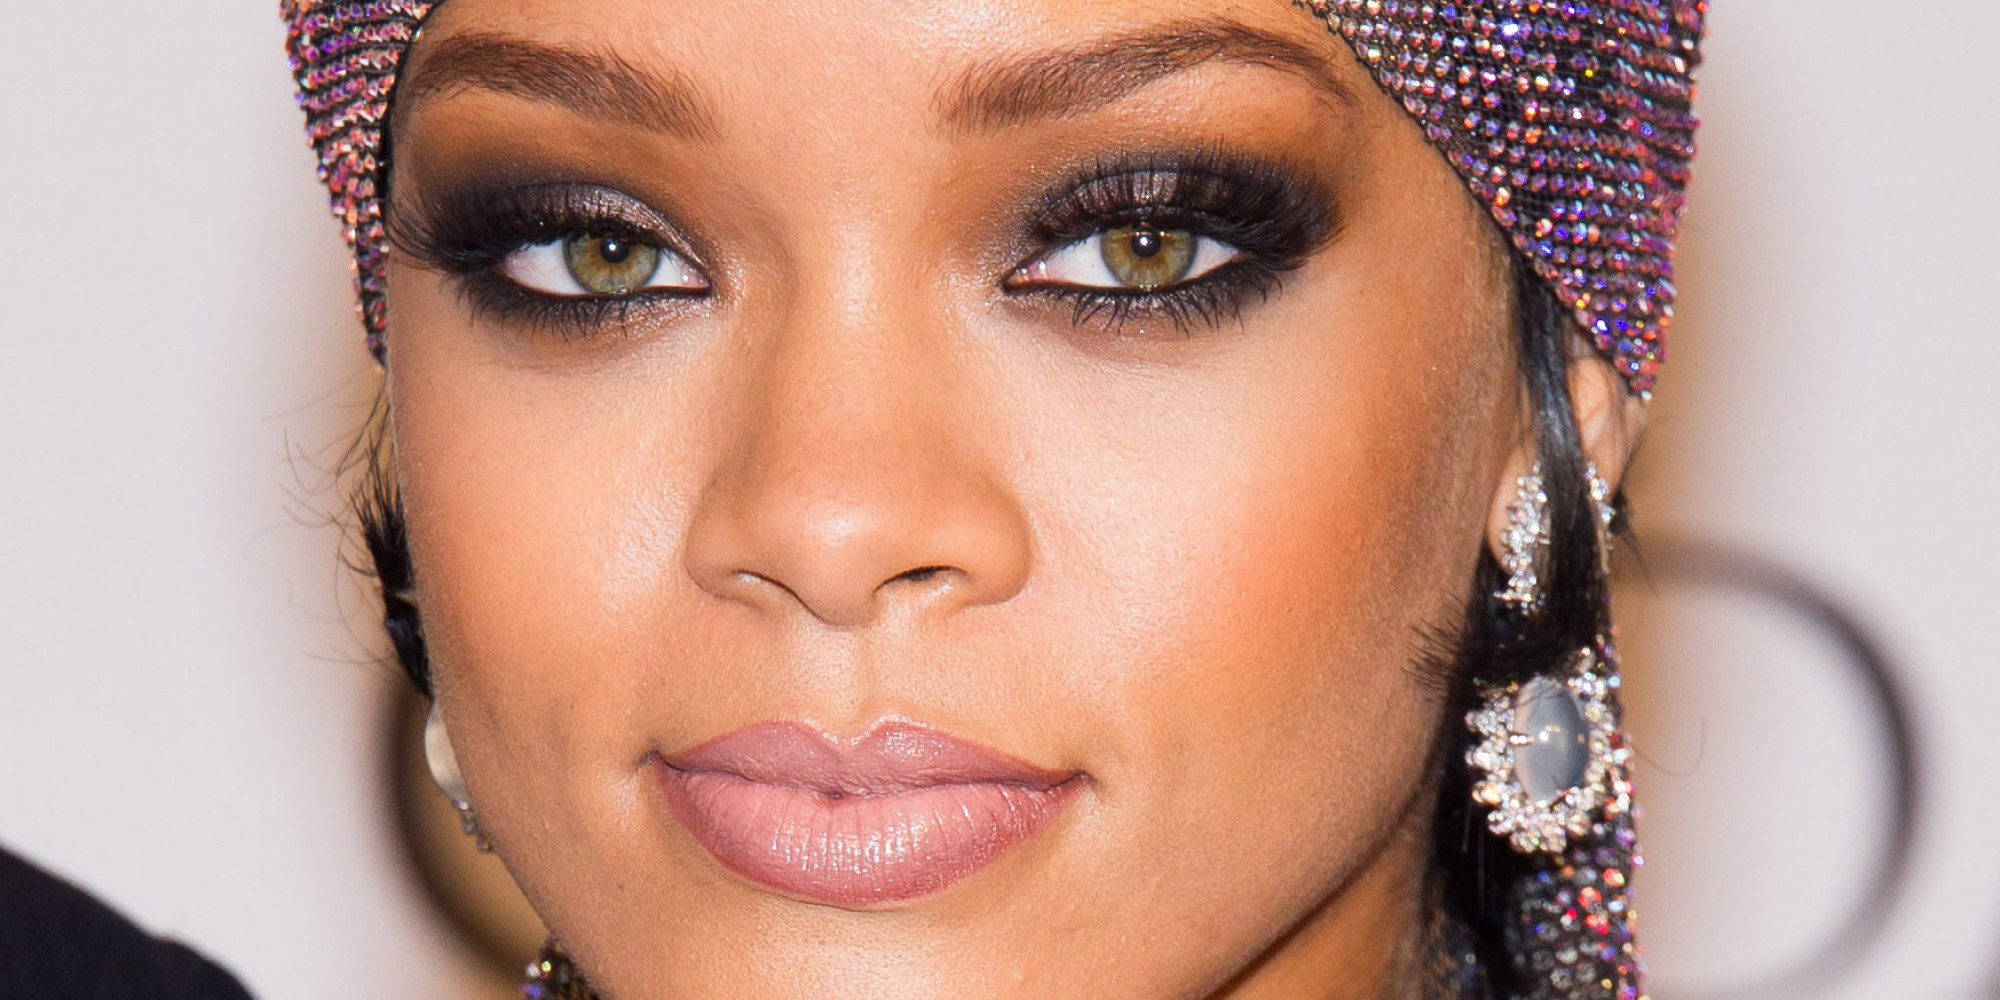 Rihanna attends the CFDA Fashion Awards on Monday, June 2, 2014 in New York. (Photo by Charles Sykes/Invision/AP)